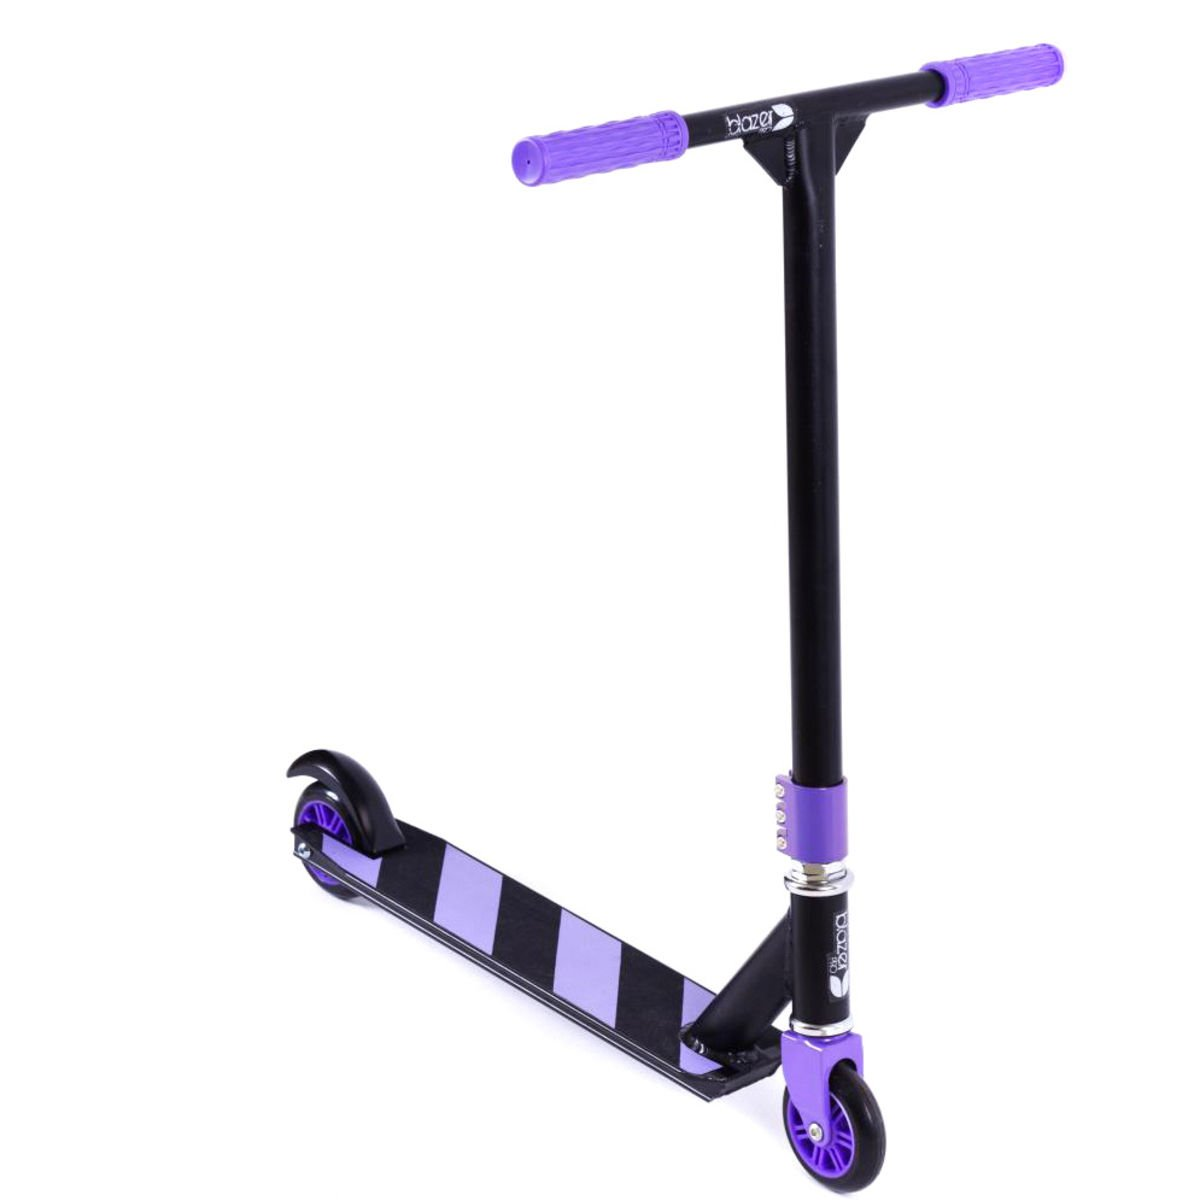 Amazon.com: Blazer Pro Scooter de Miami, color morado Hazard ...